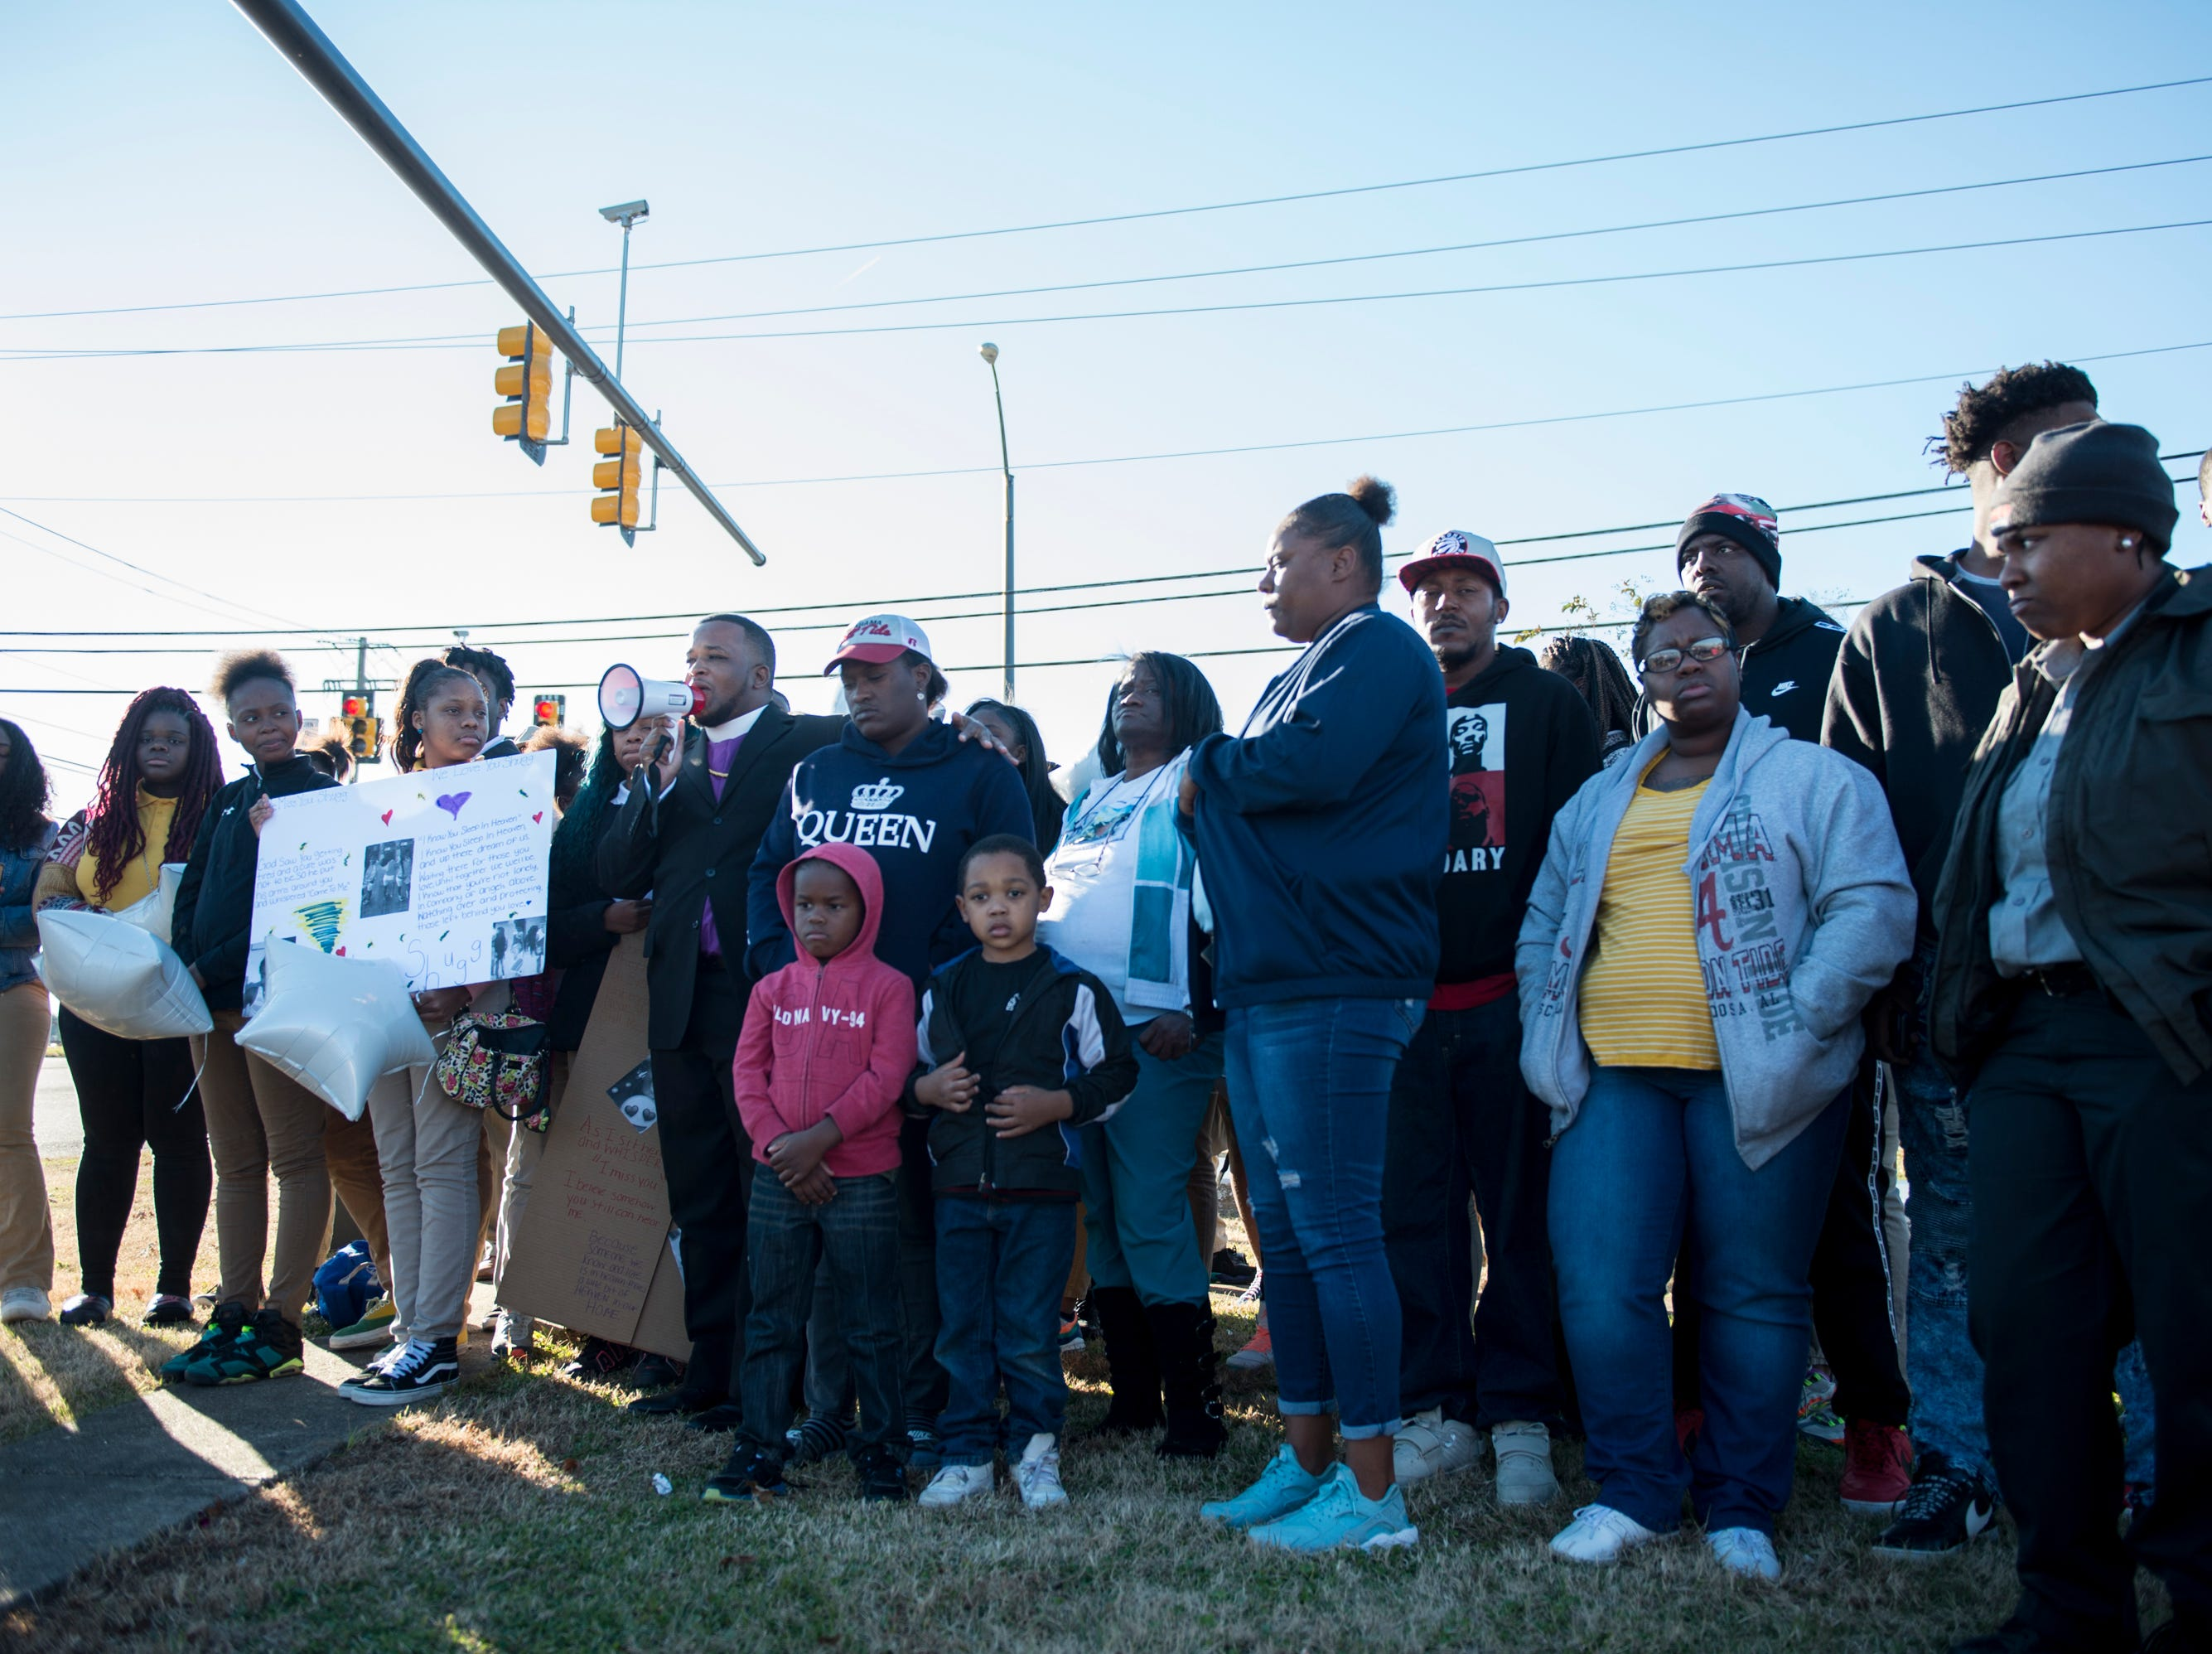 Ja'Mel Brown leads a vigil for Keiauna Williams across from Carver High School in Montgomery, Ala., on Tuesday, Dec. 4, 2018. Williams was died after being hit by a car Saturday night.